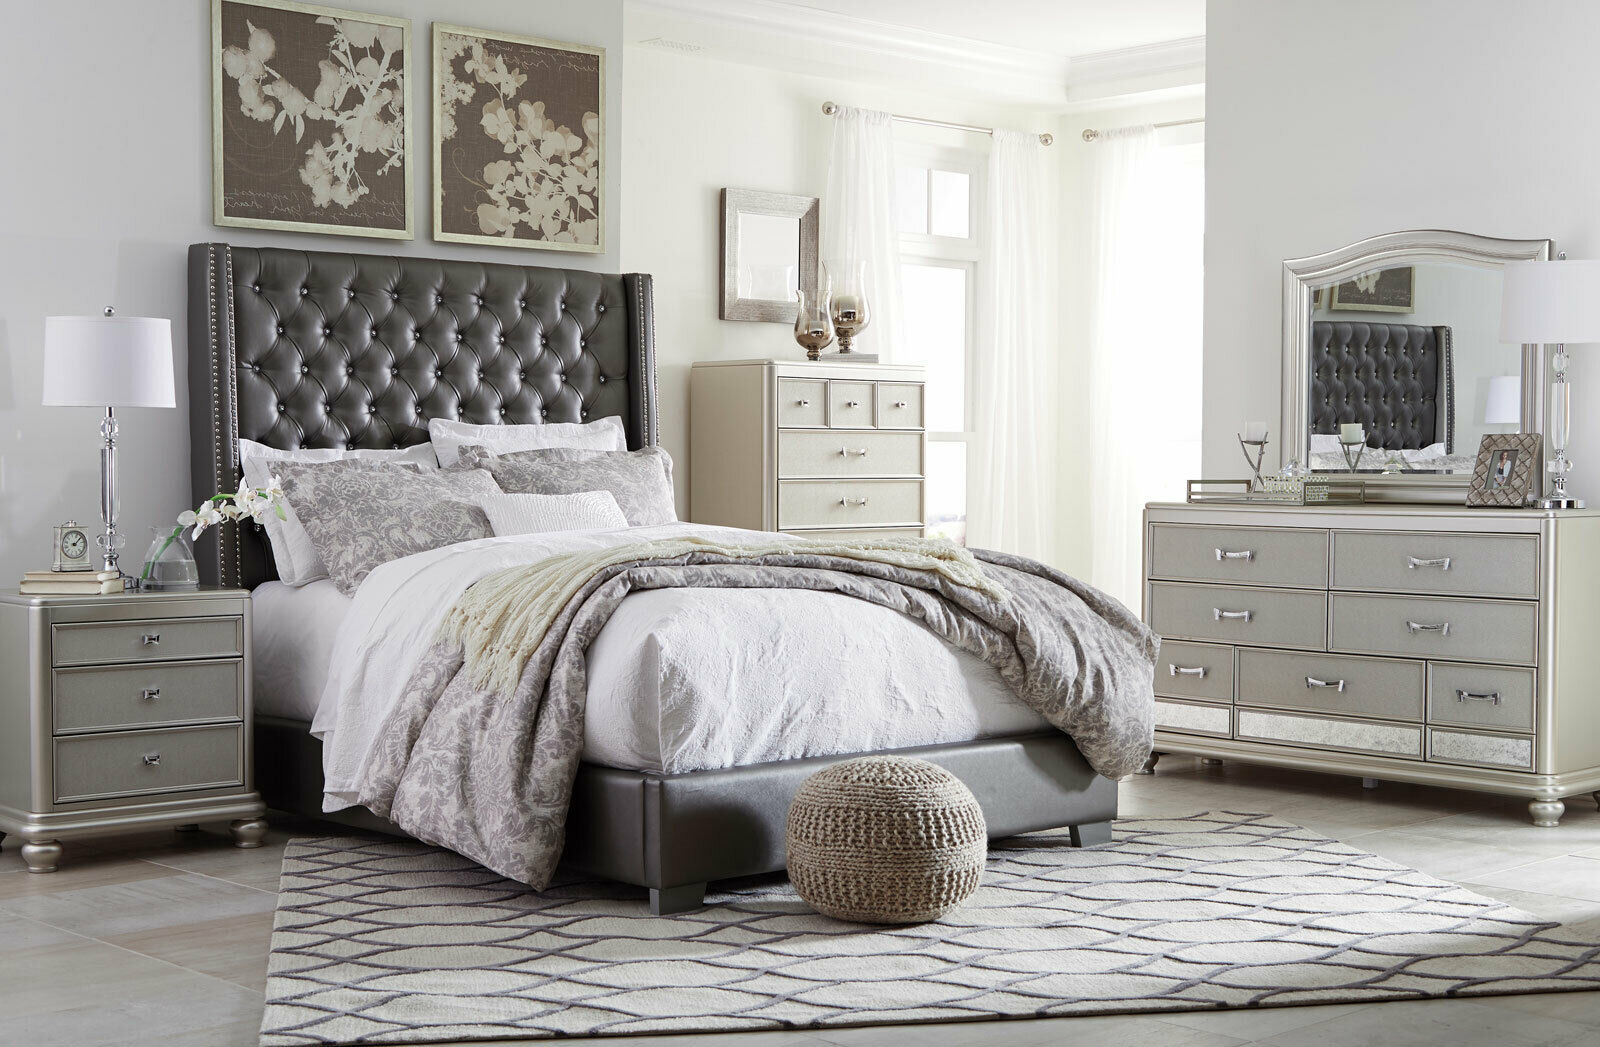 Modern Glamorous Silver 5pcs Bedroom Set Furniture W Gray Panel Queen Bed Ia0y For Sale Online